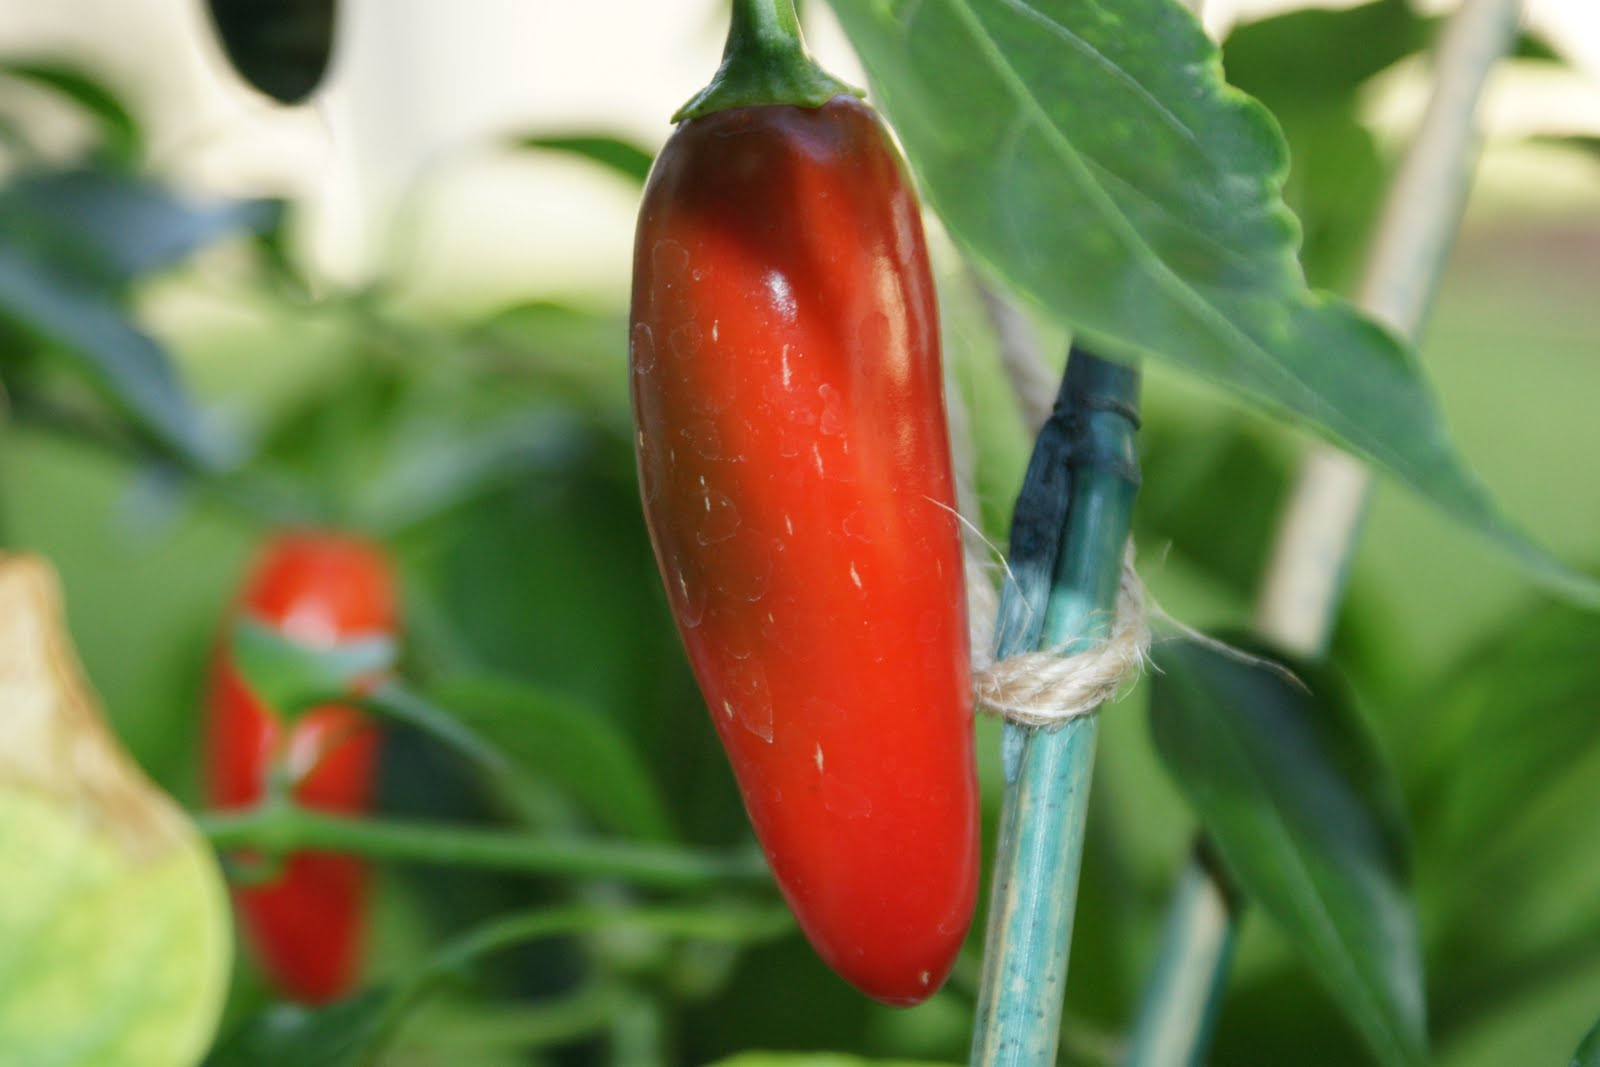 Here's a picture of a serrano pepper growing in my backyard.